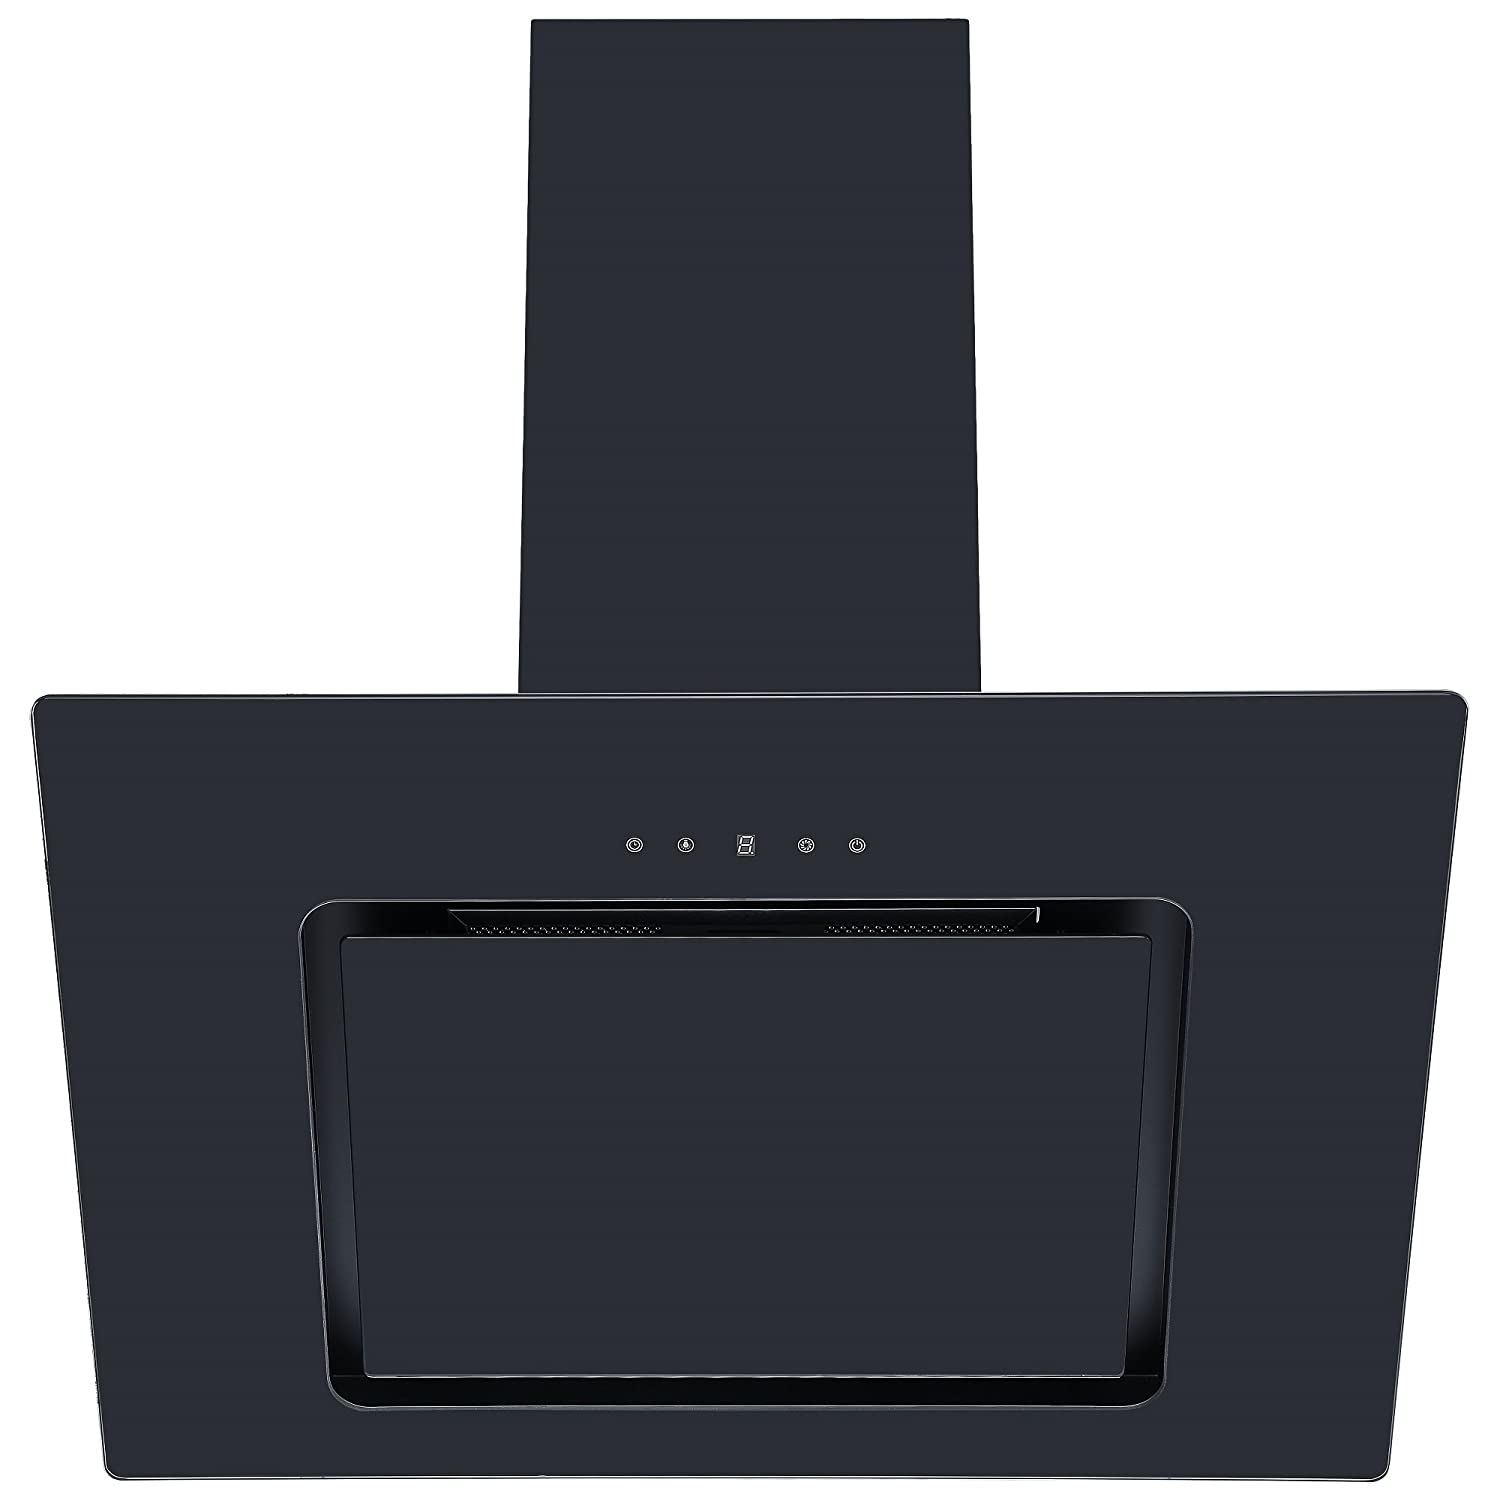 Cookology VER705BK 70cm Black Angled Glass Chimney Cooker Hood | Touch Controls [Energy Class C]